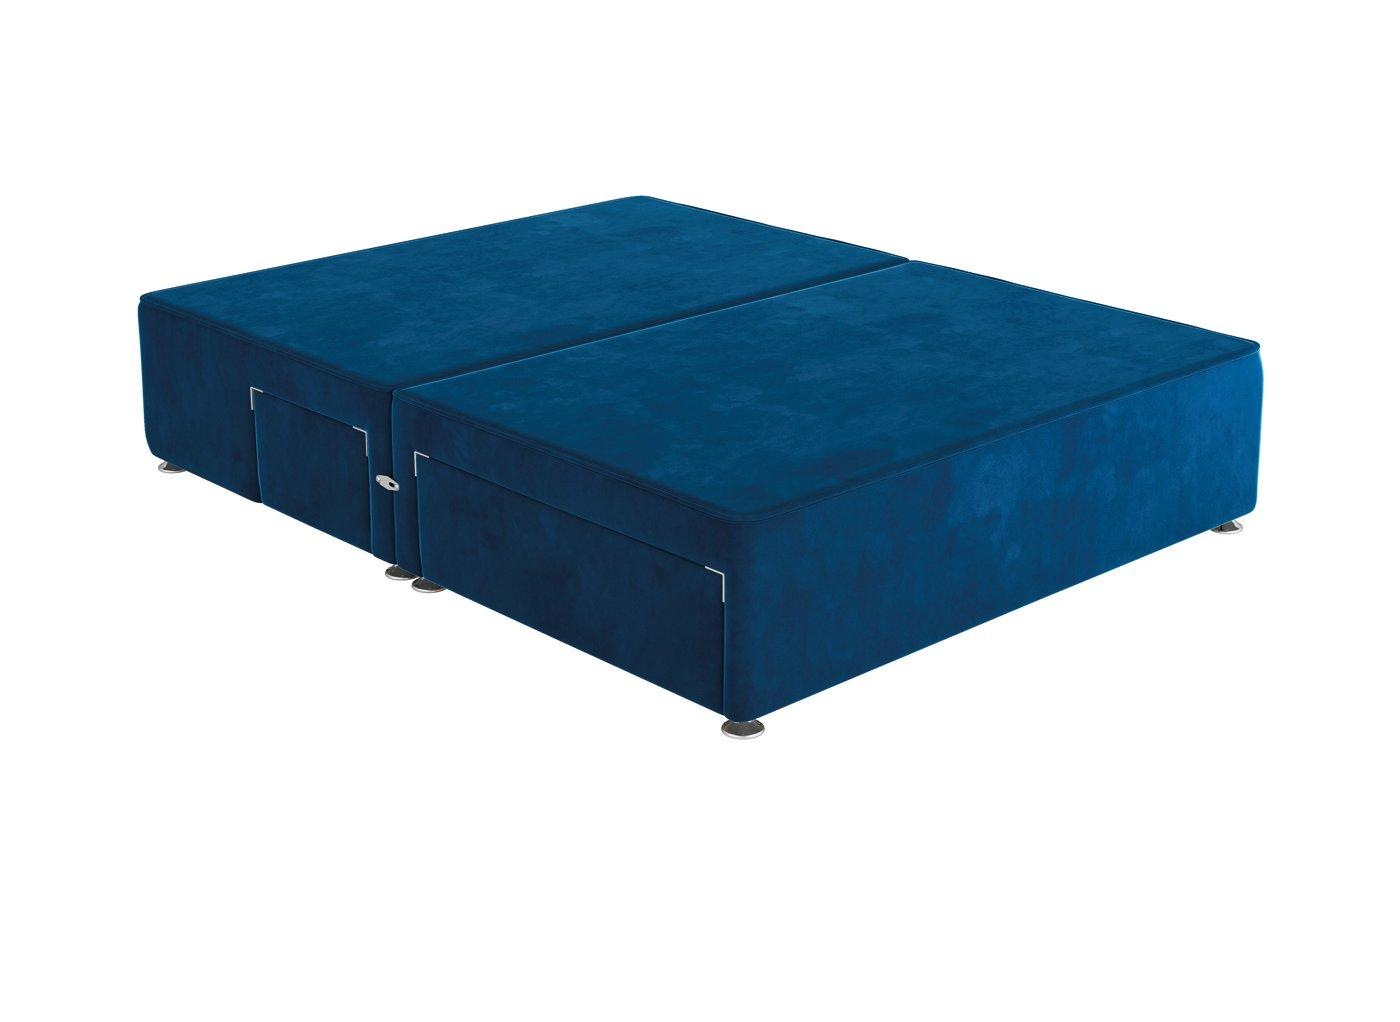 Sleepeezee 4'0 P/T 2+2 Drw Base Plush Navy 4'0 Small double BLUE